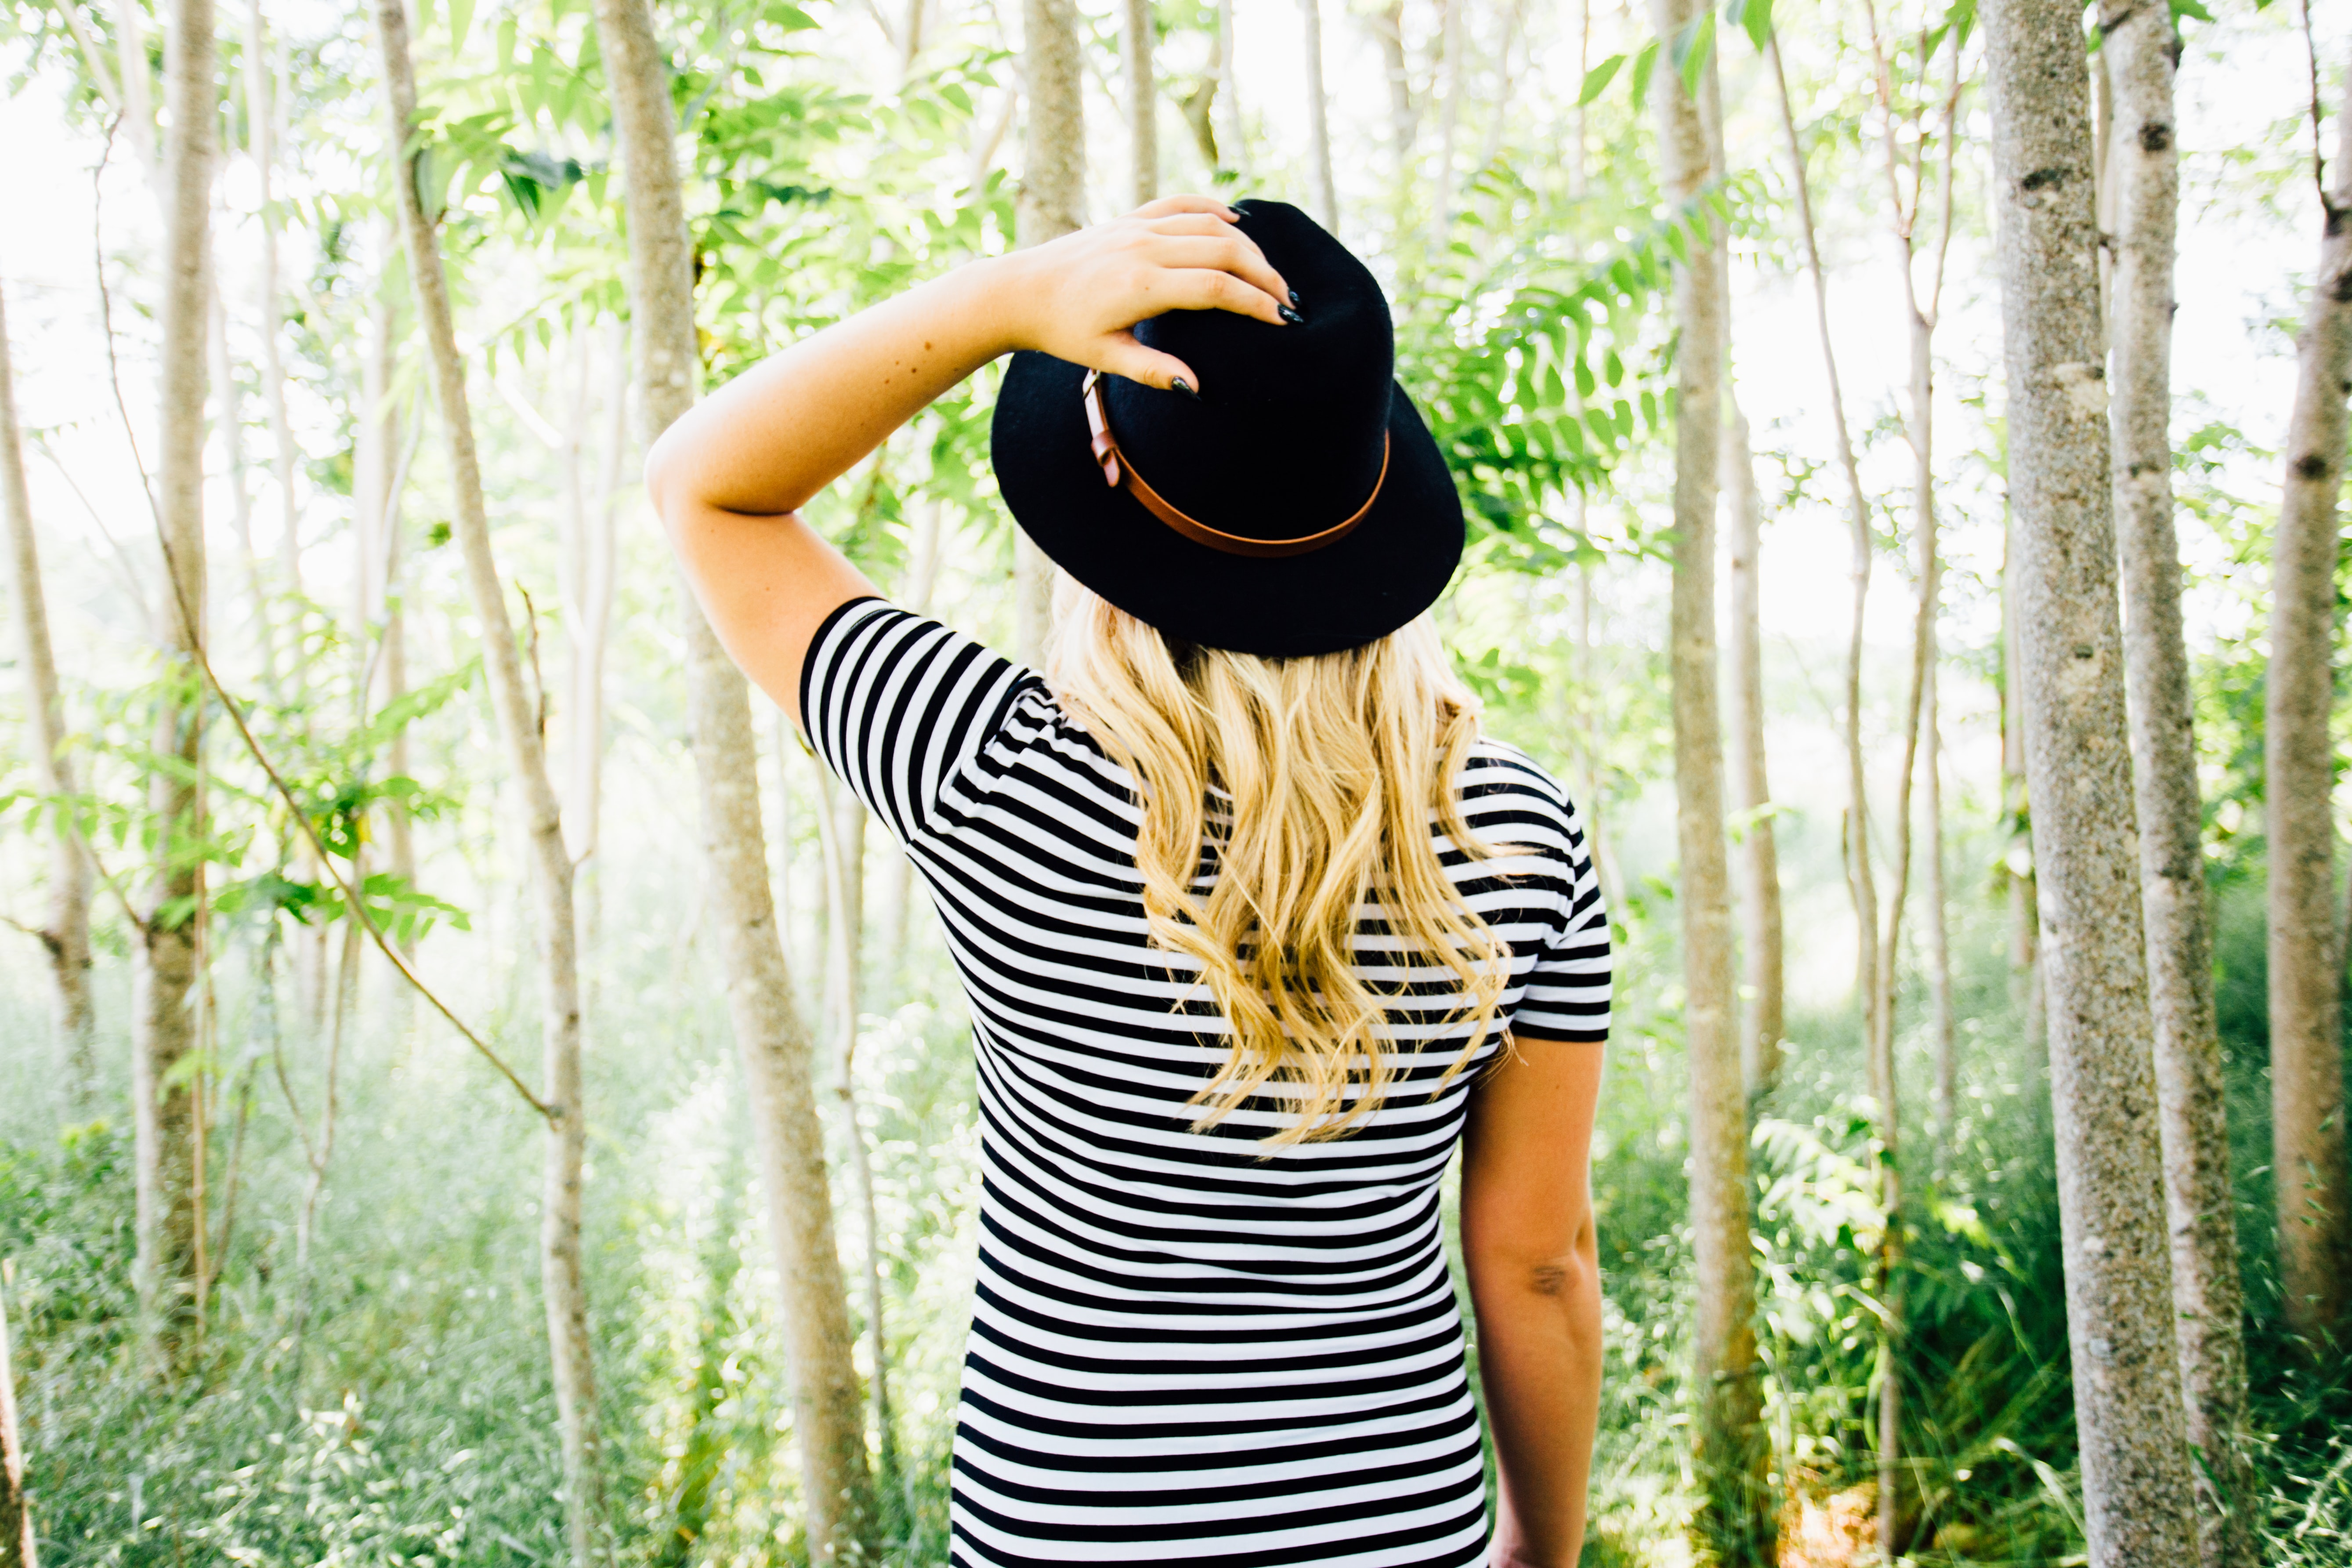 A blonde woman in a black hat standing back to camera in a forest